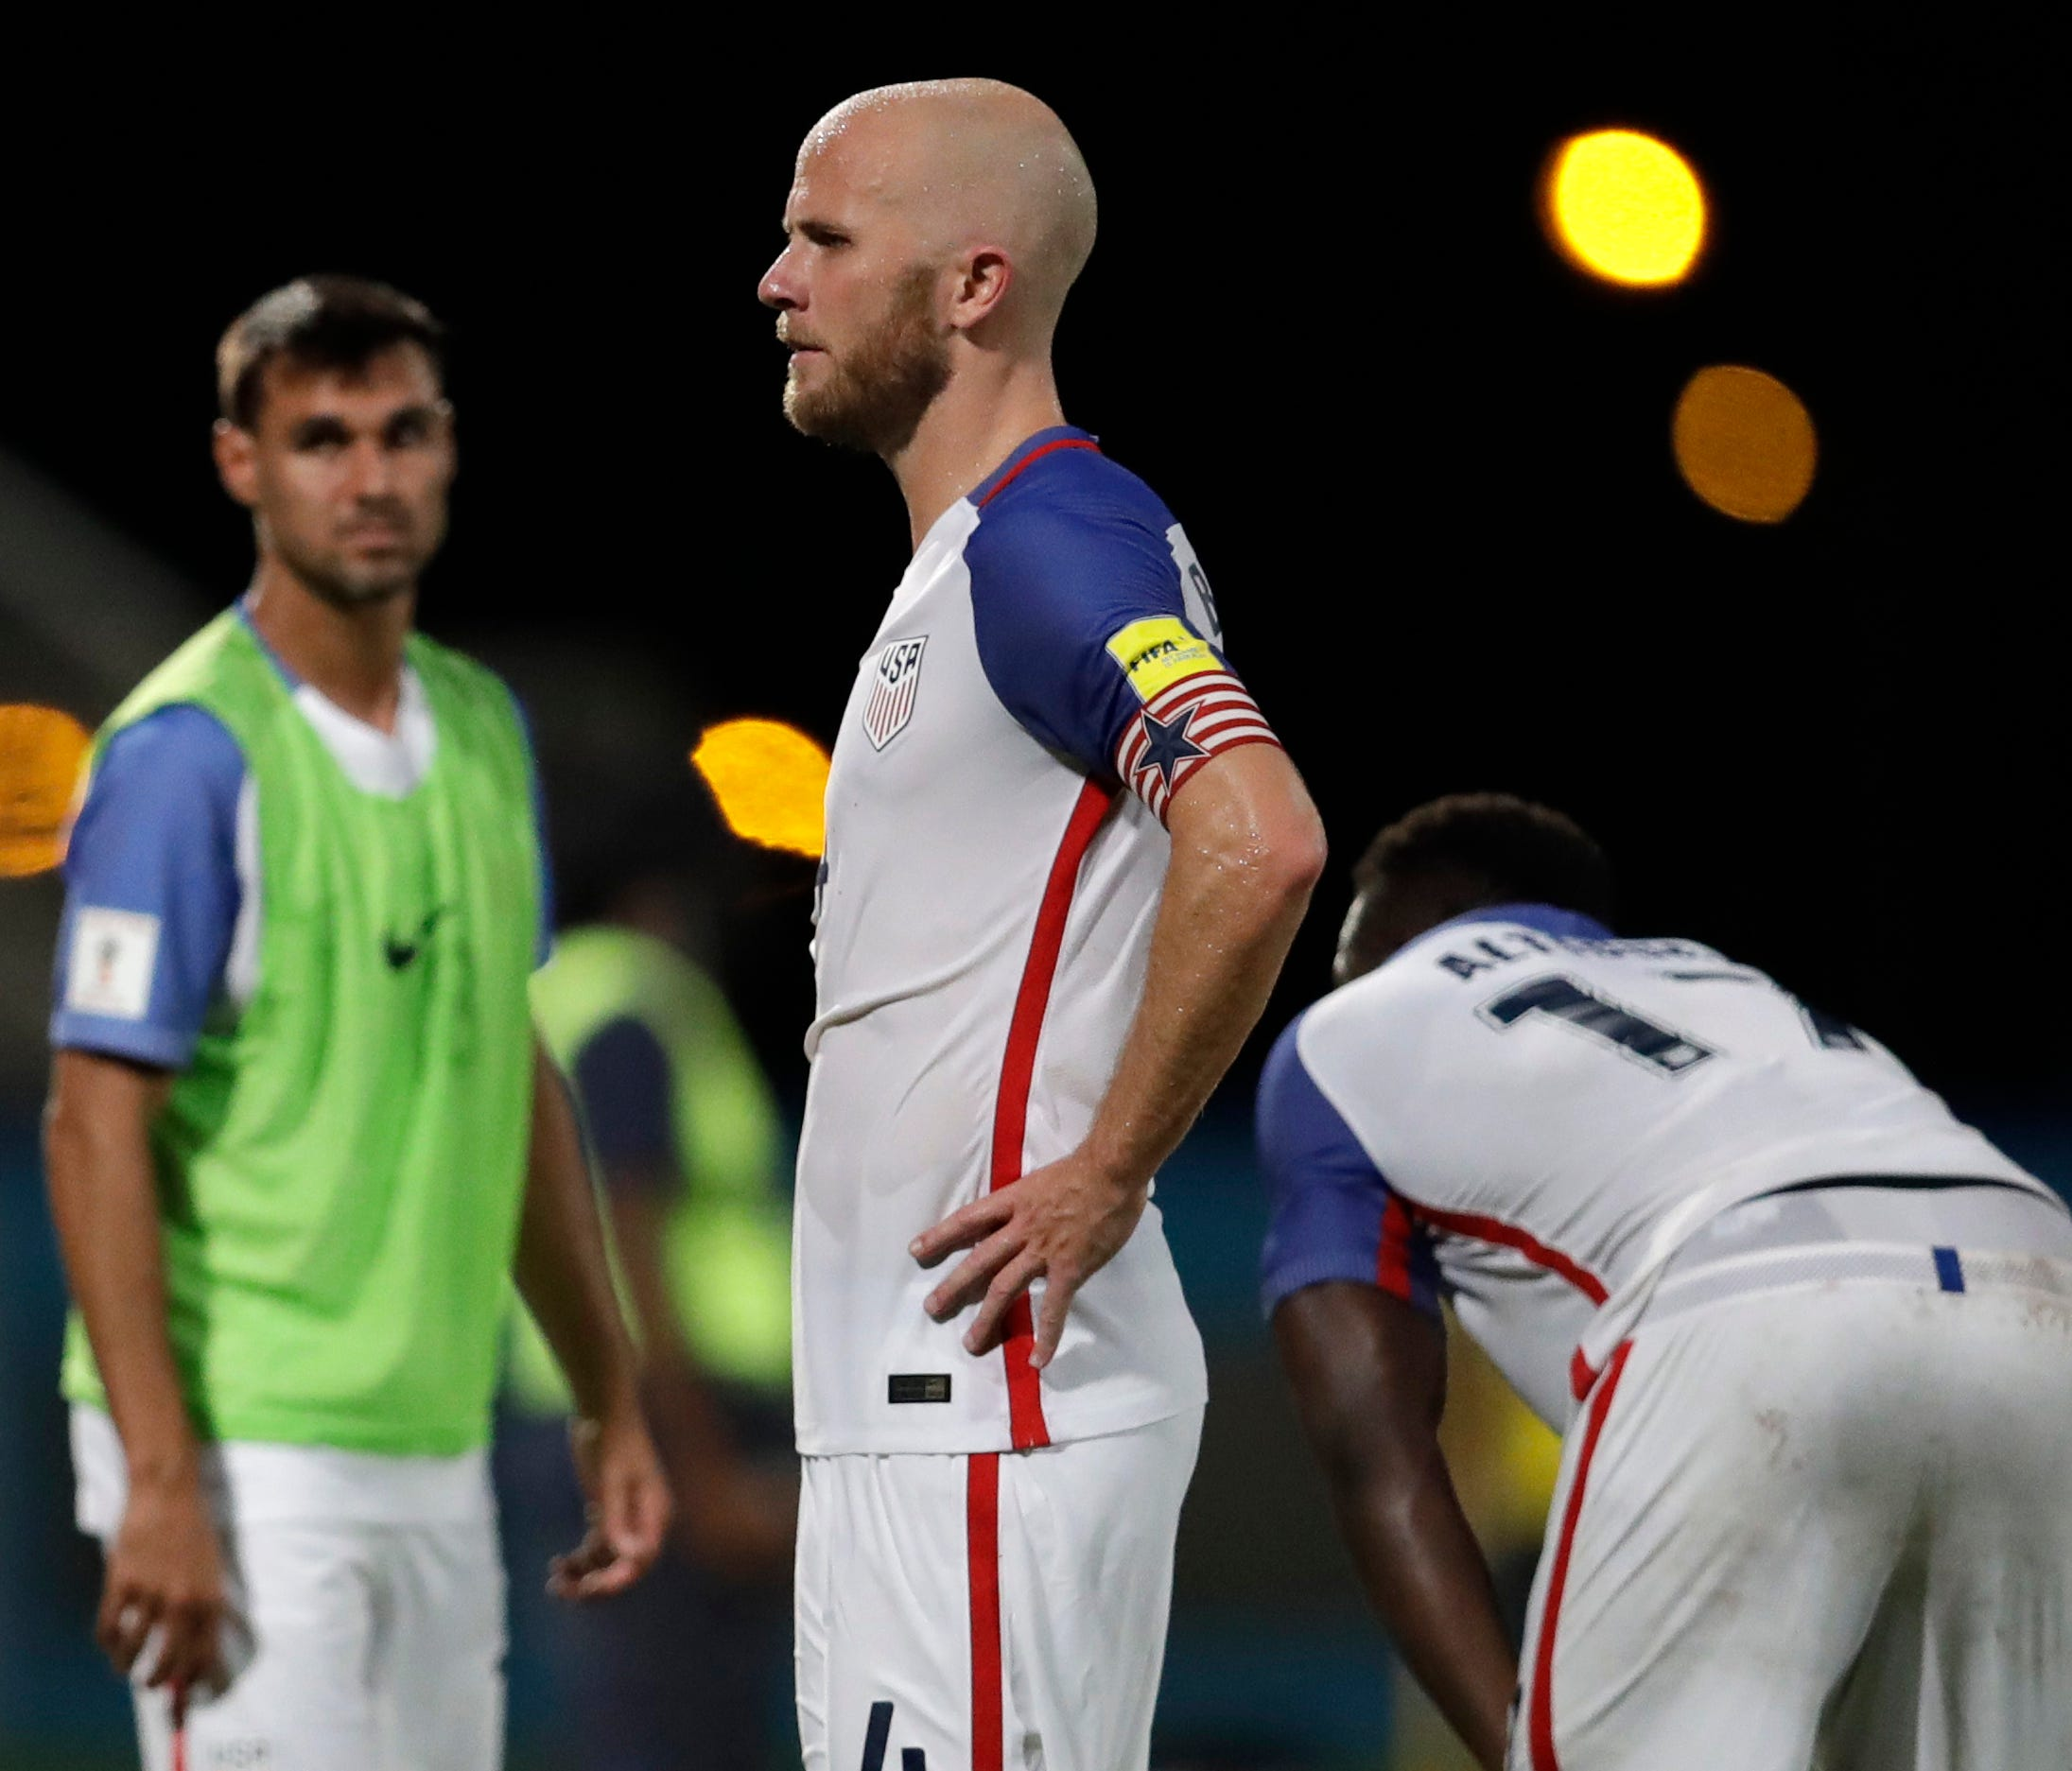 Michael Bradley reacts after losing to Trinidad and Tobago.